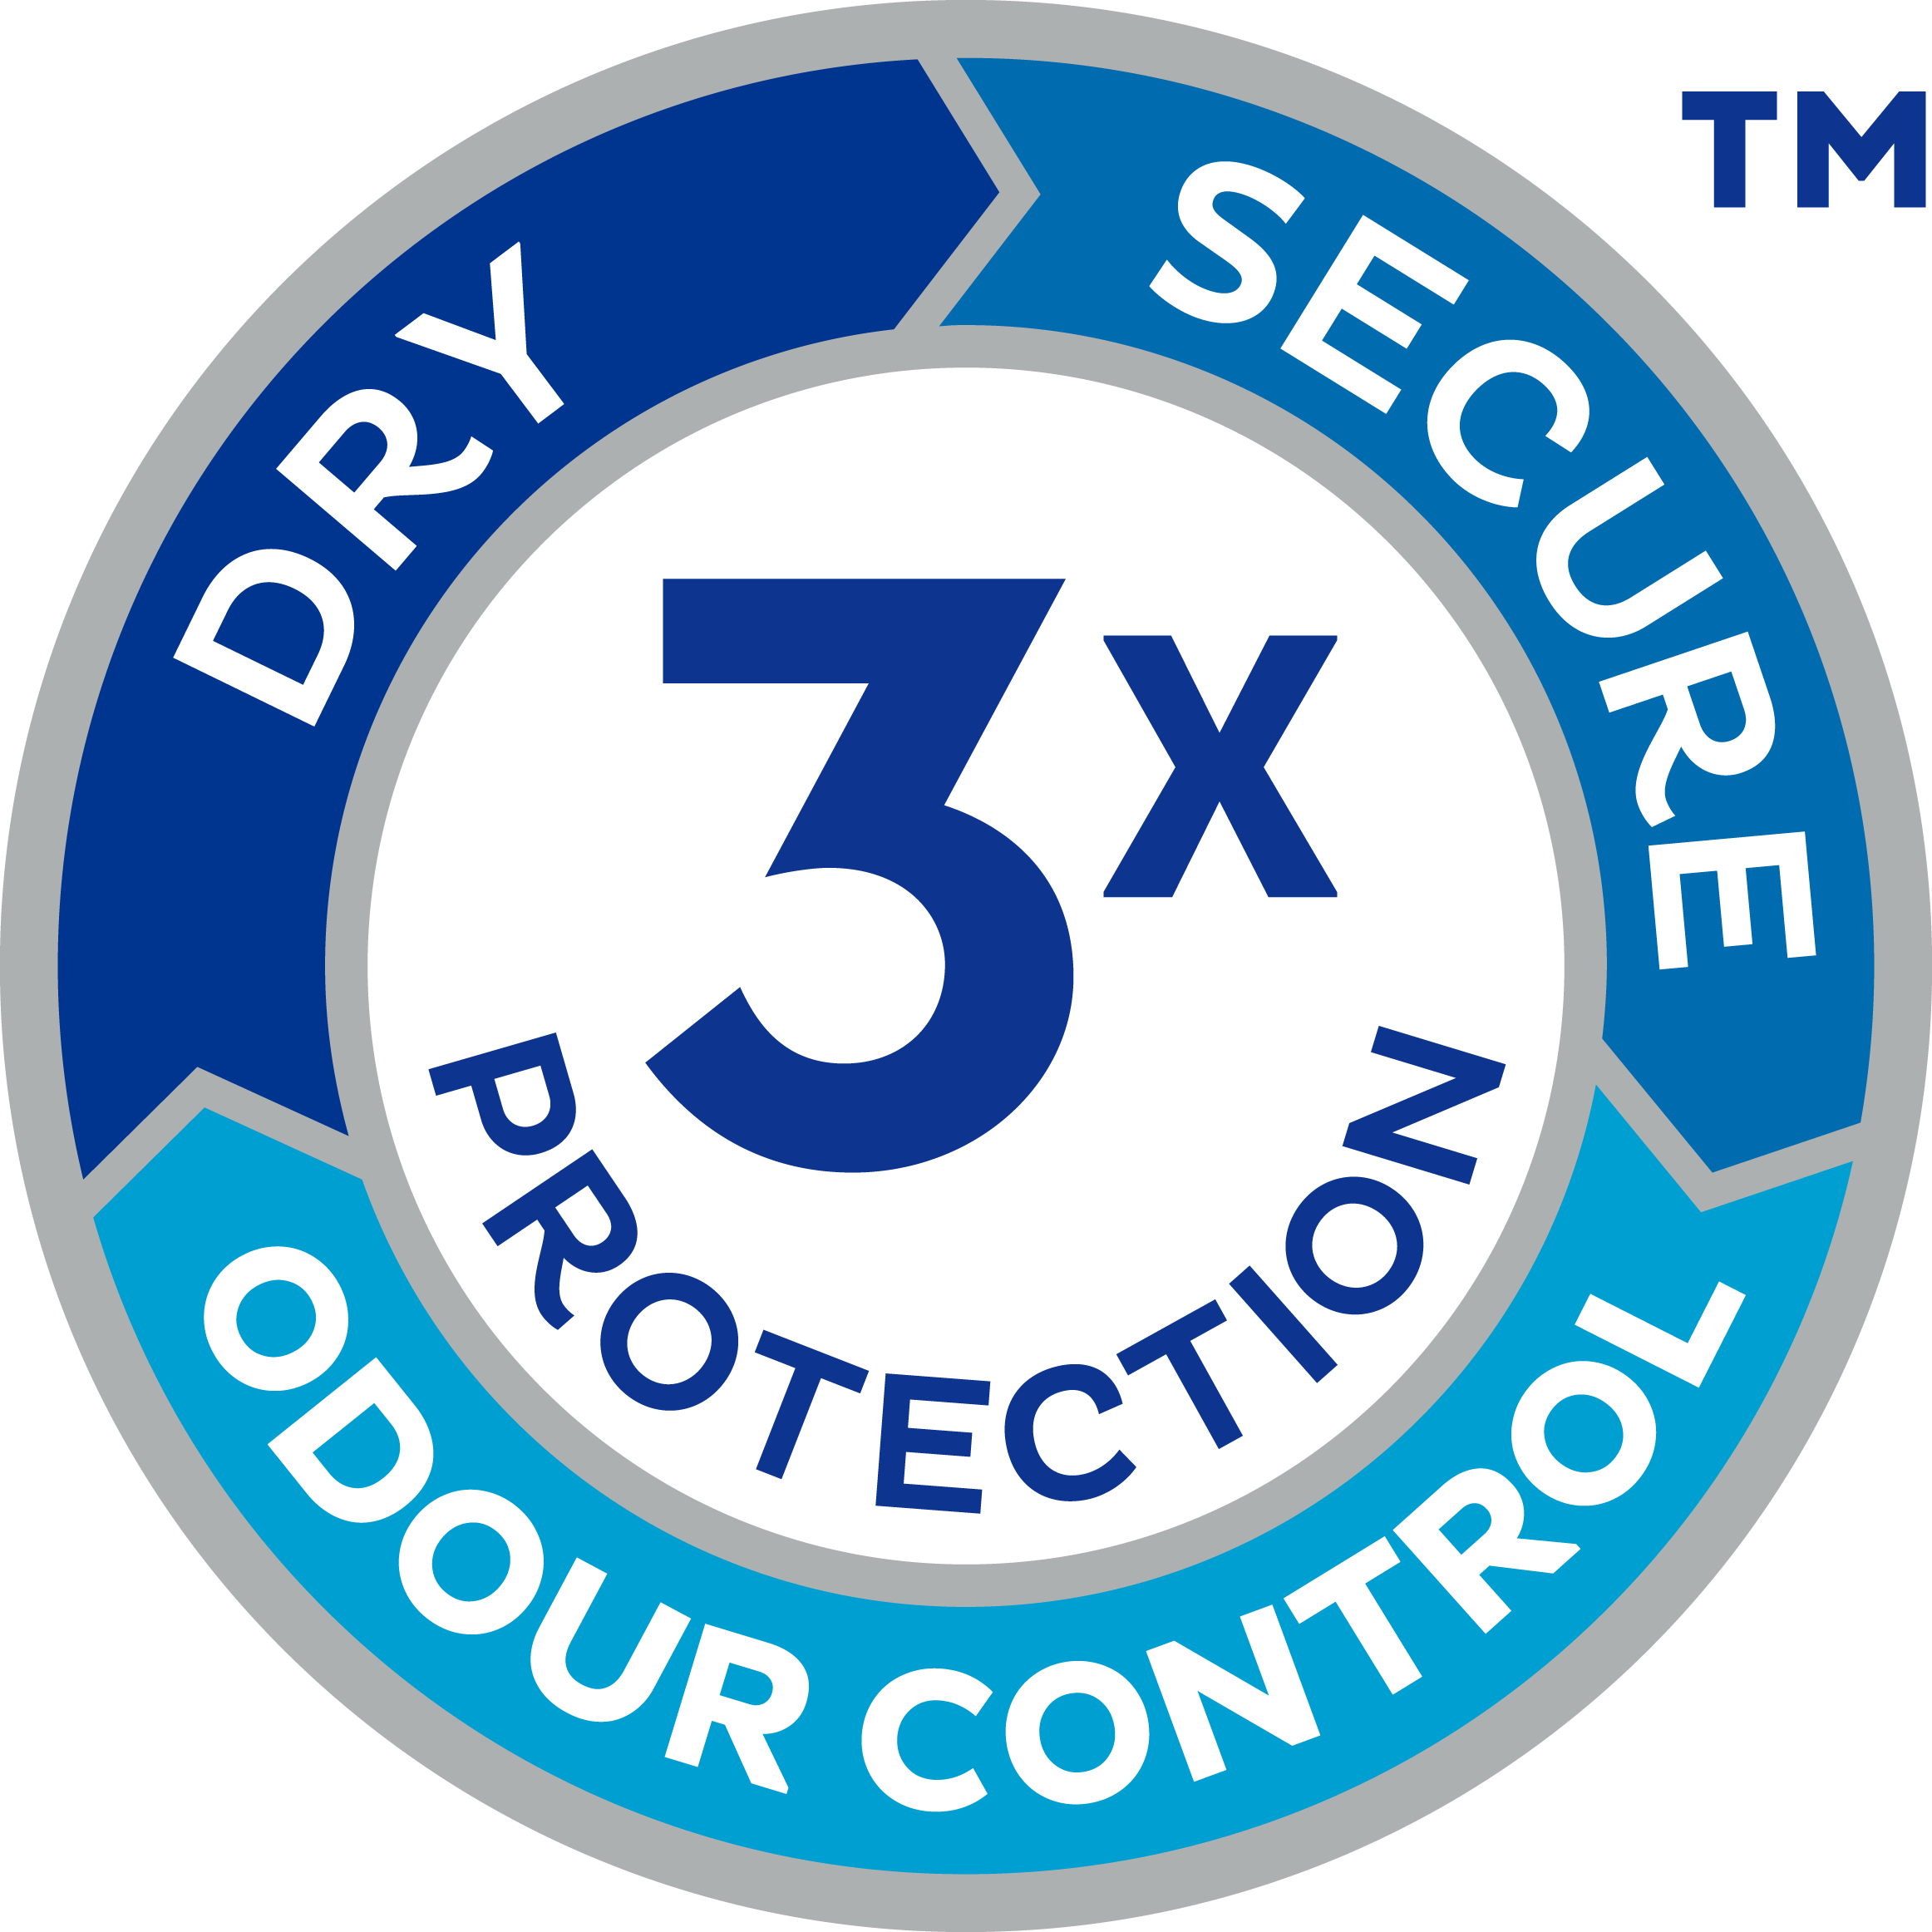 TENA Discreet gives Triple Protection against leaks, odour and moisture